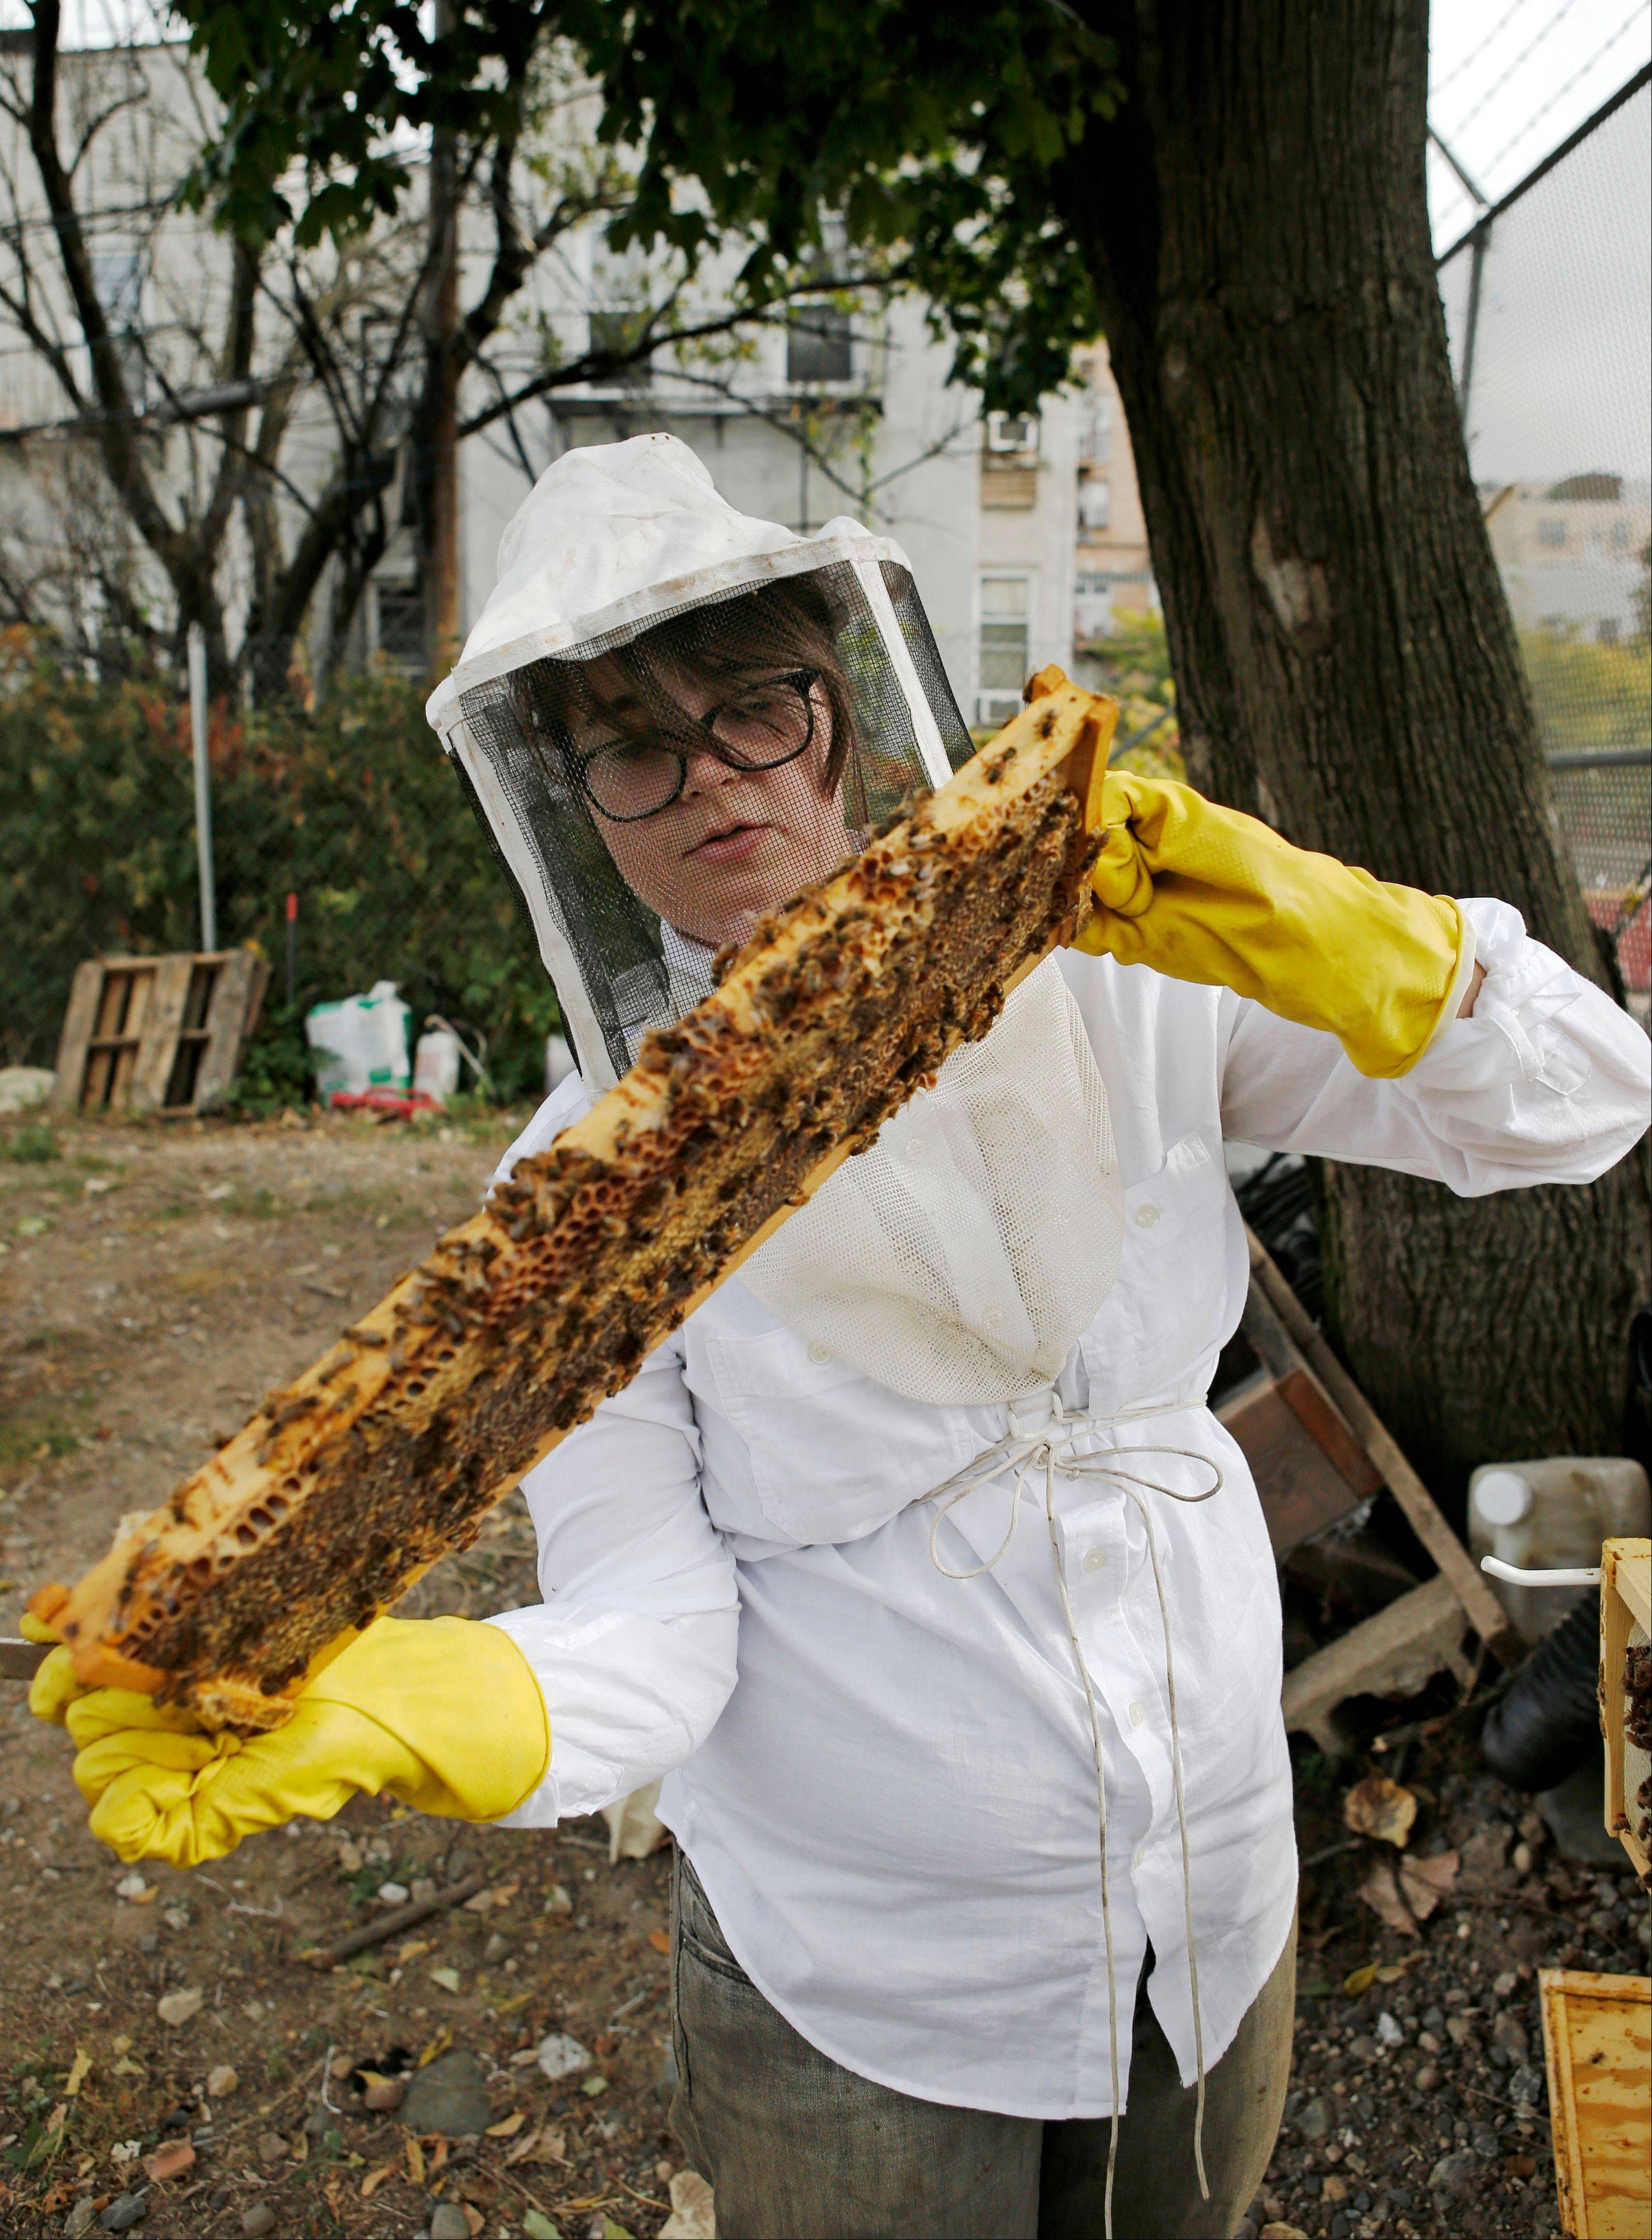 Beekeeper Kellen Henry inspects bees from her Feedback Farms hive in the Myrtle Village Green community garden in the Bedford-Stuyvesant section of Brooklyn in New York.